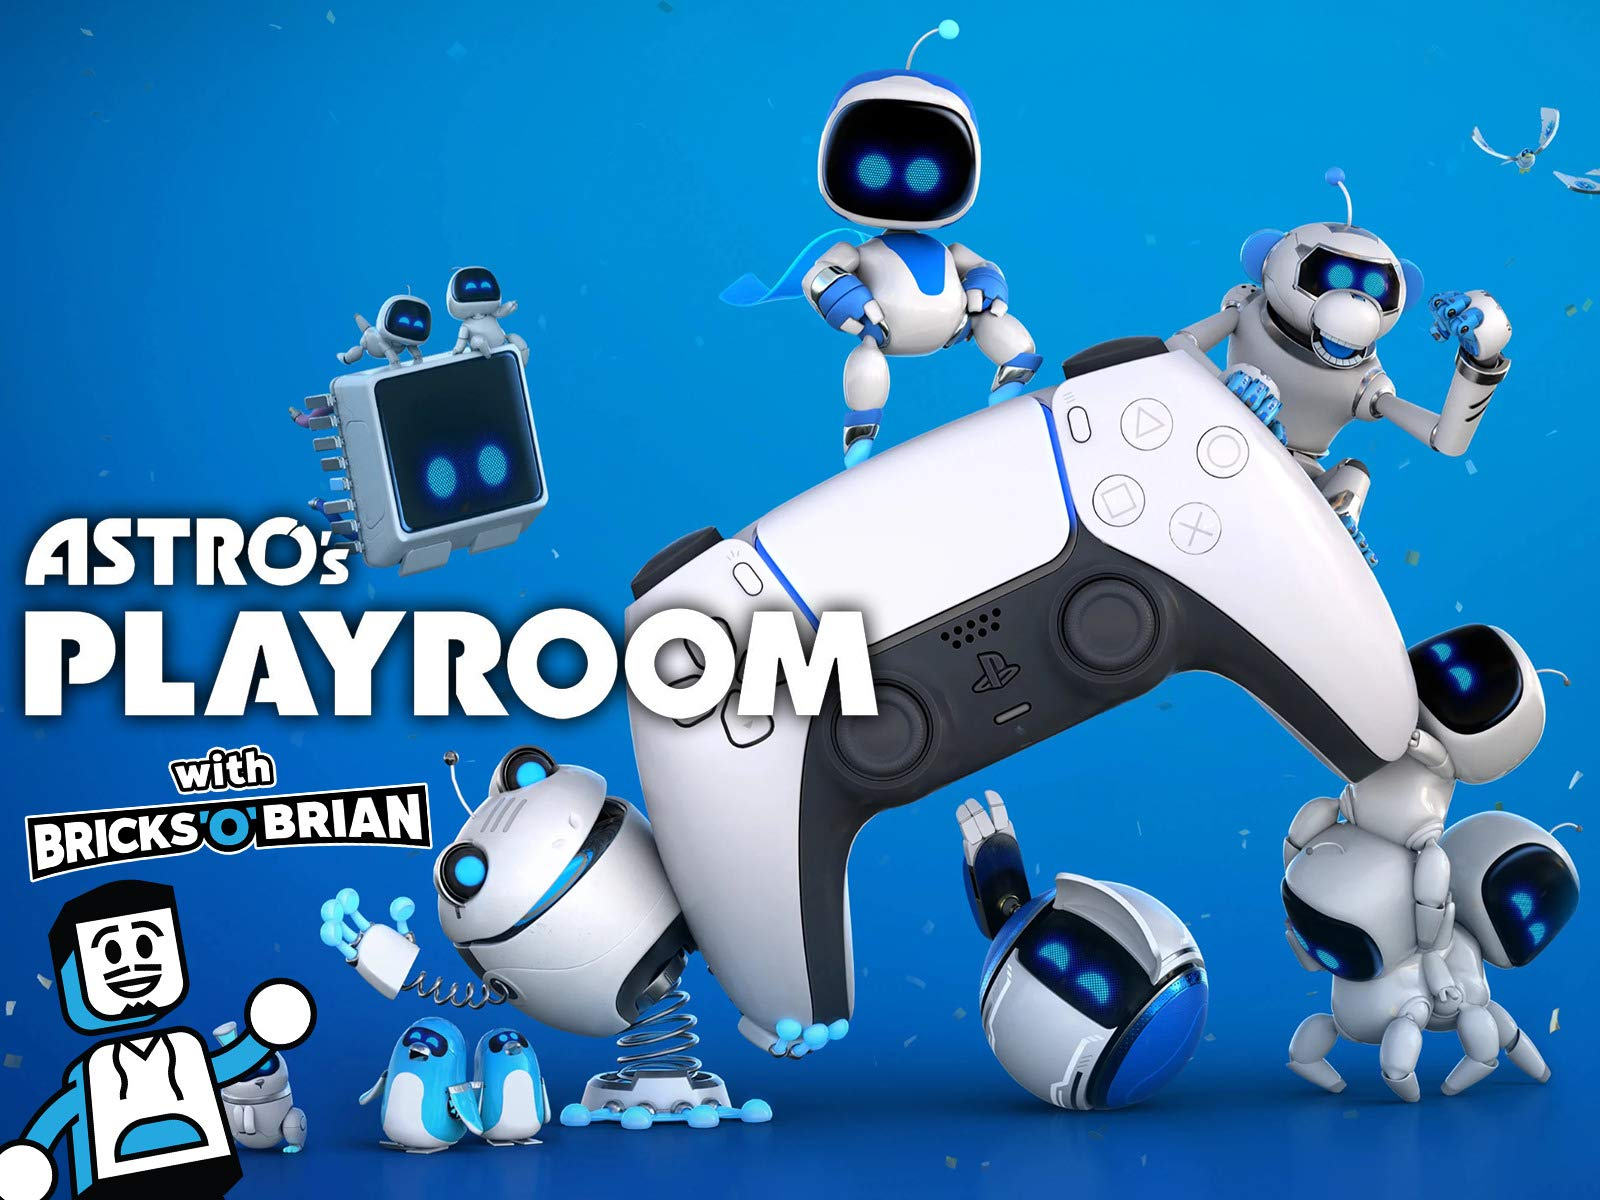 Clip: Astro's Playroom with Bricks 'O' Brian! on Amazon Prime Instant Video UK